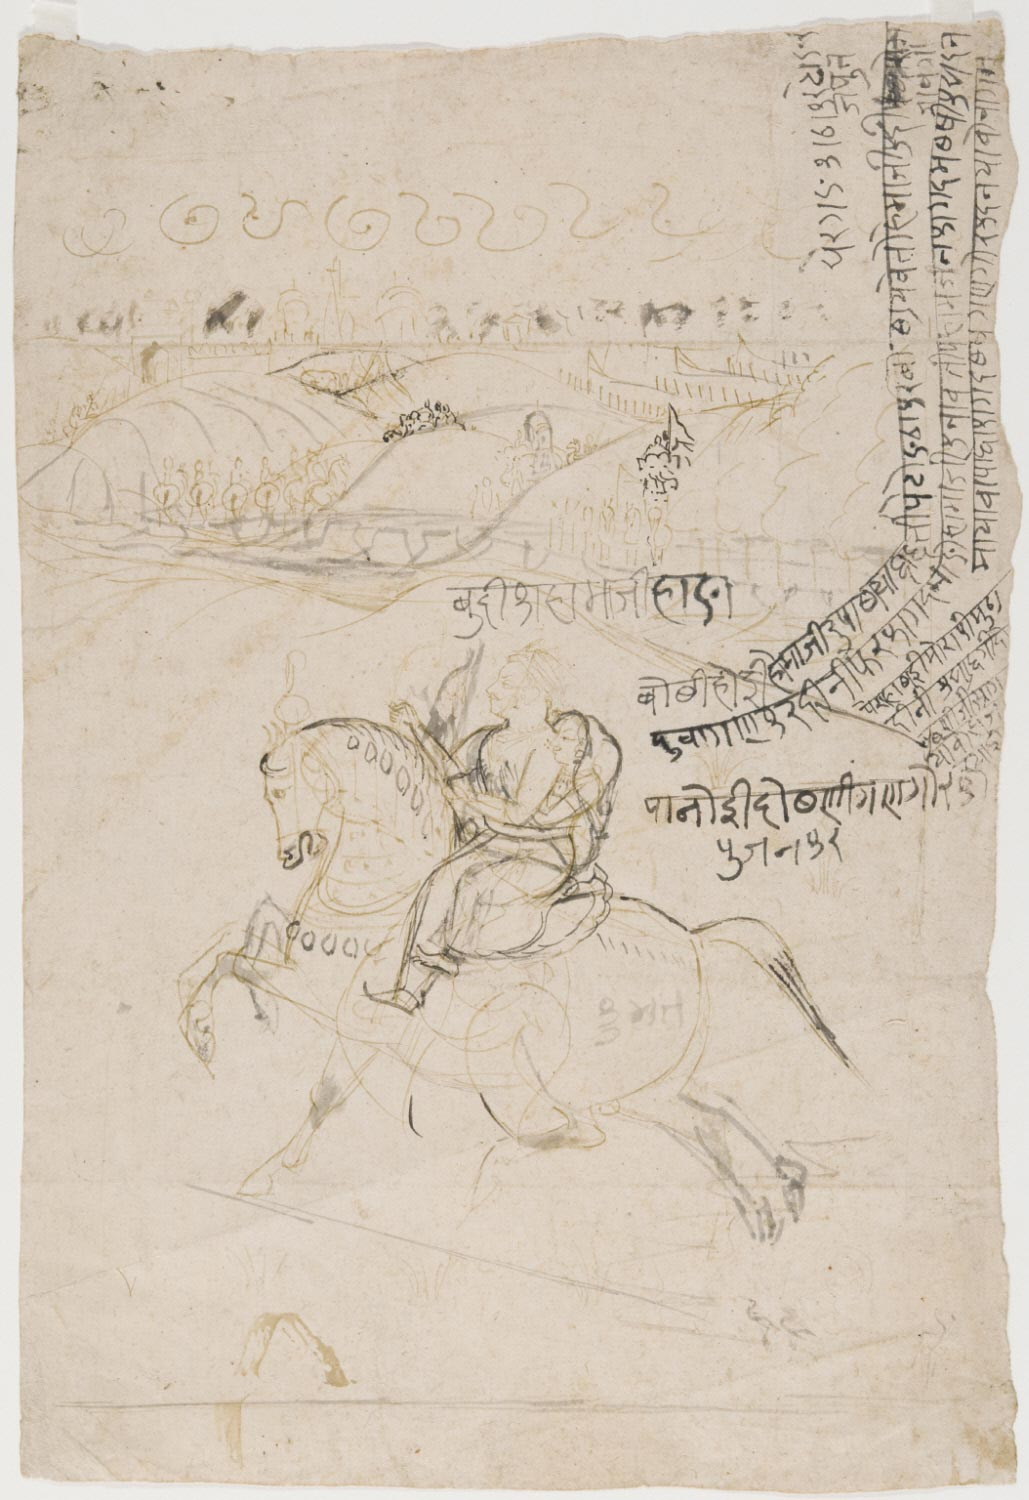 Maharao Ram Singh II and Courtesan on a Hunting Expedition